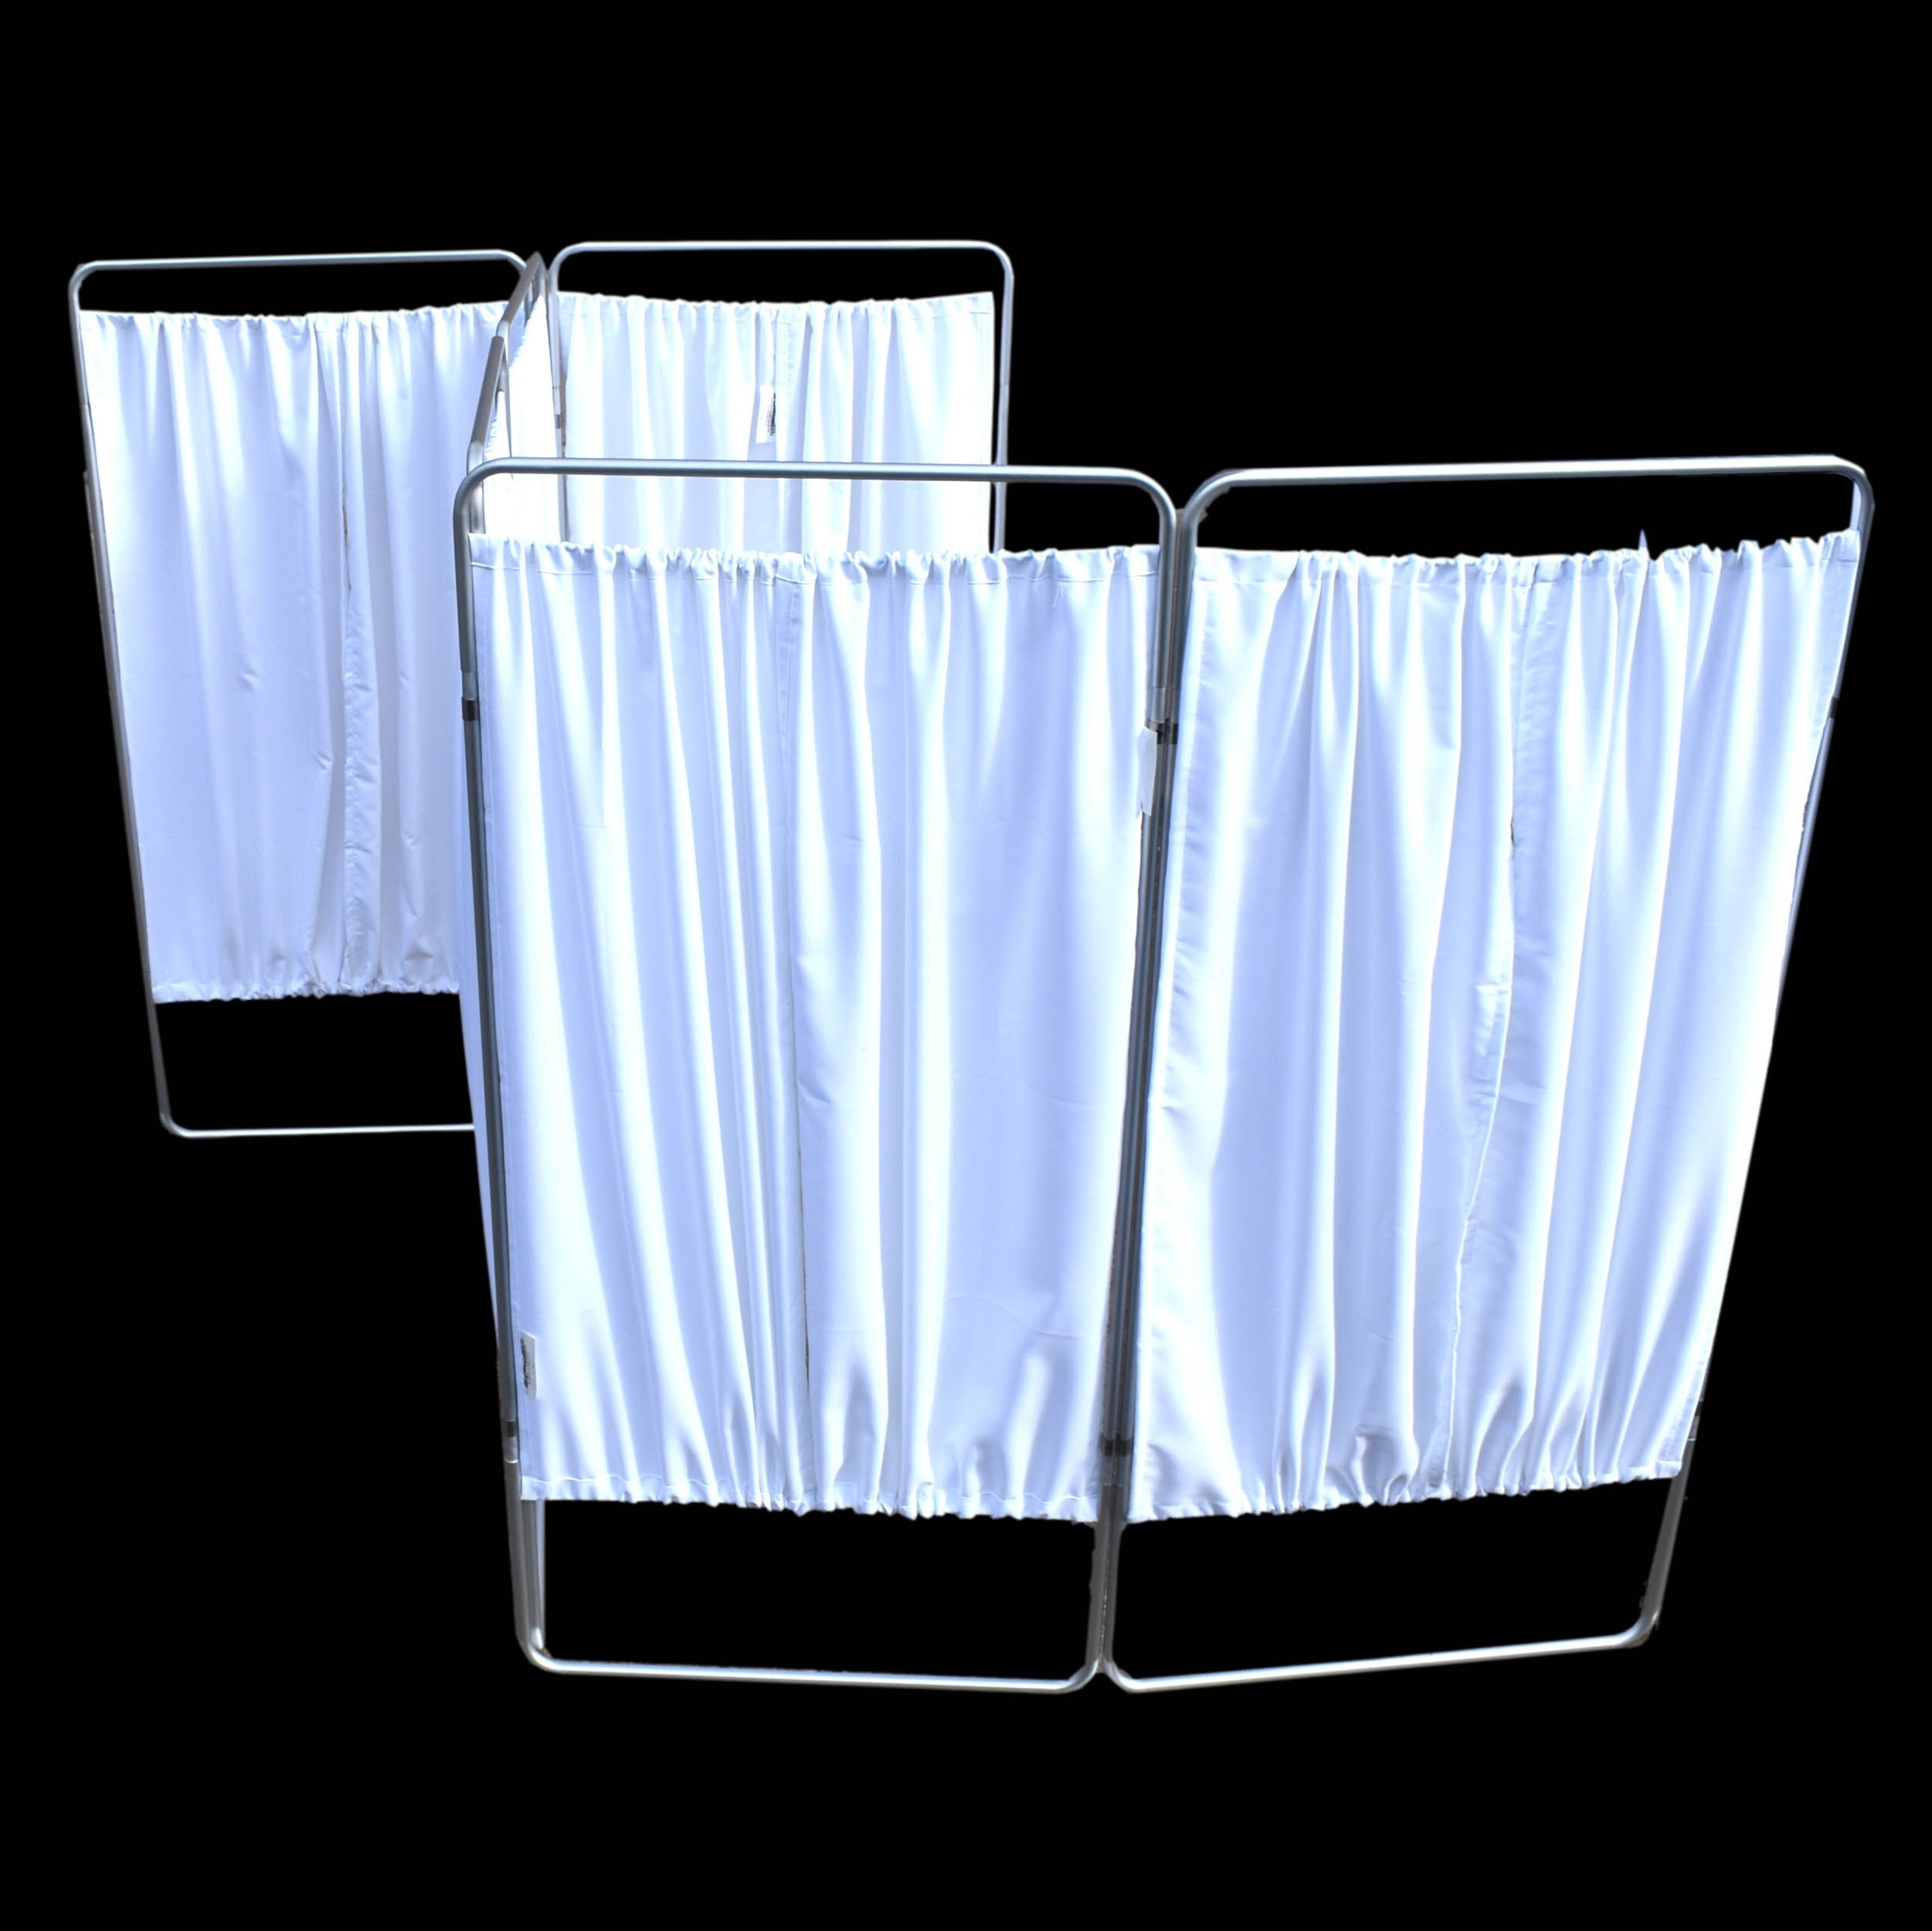 King Economy Privacy Screen with T-Hinge and White Vinyl Panel - 6 Section